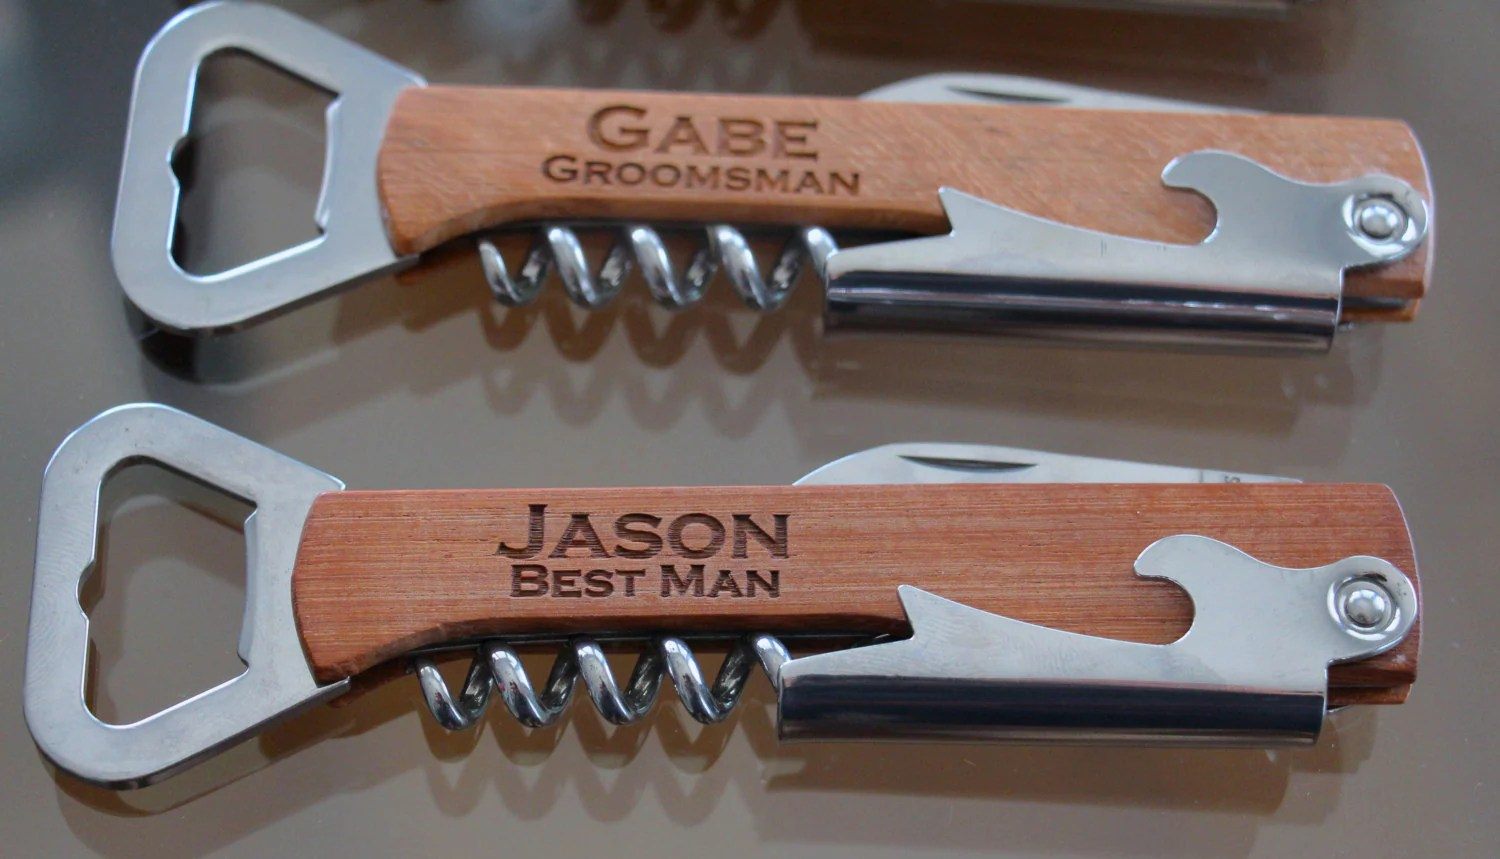 Cool Corkscrew Gifts Personalized Wine Beer Bottle Opener Groomsmen Gifts